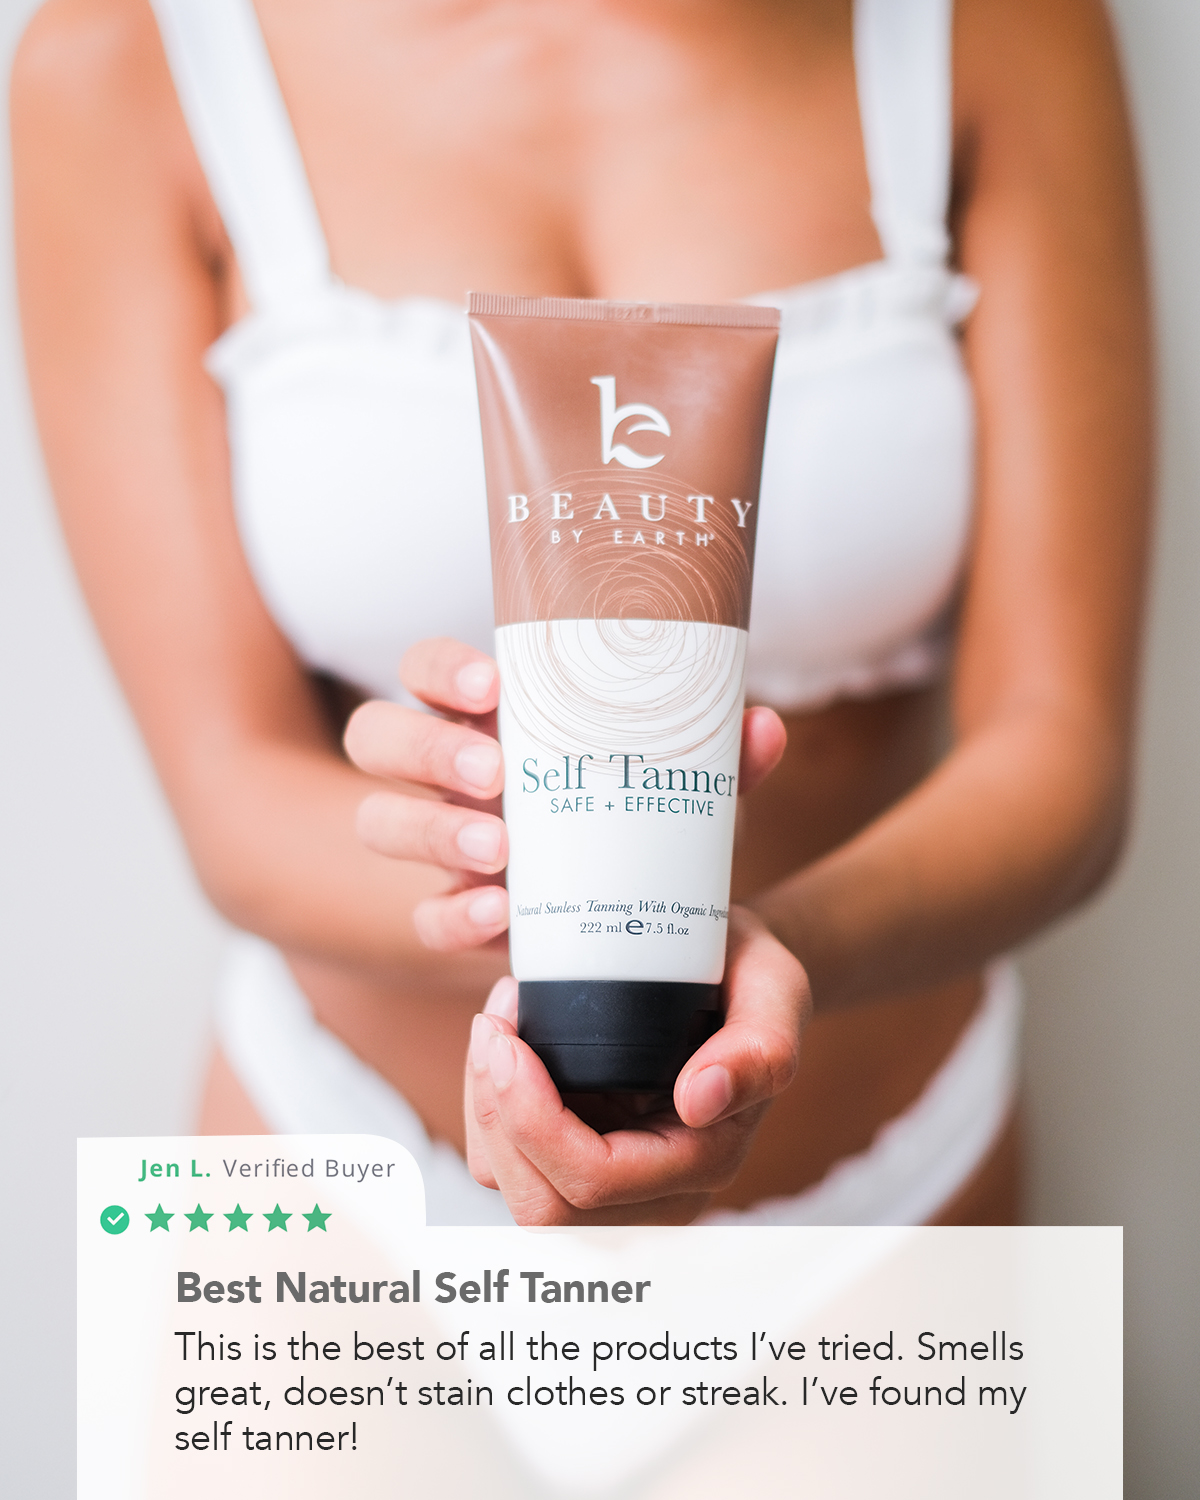 Shop Self Tanner at BeautyByEarth.com